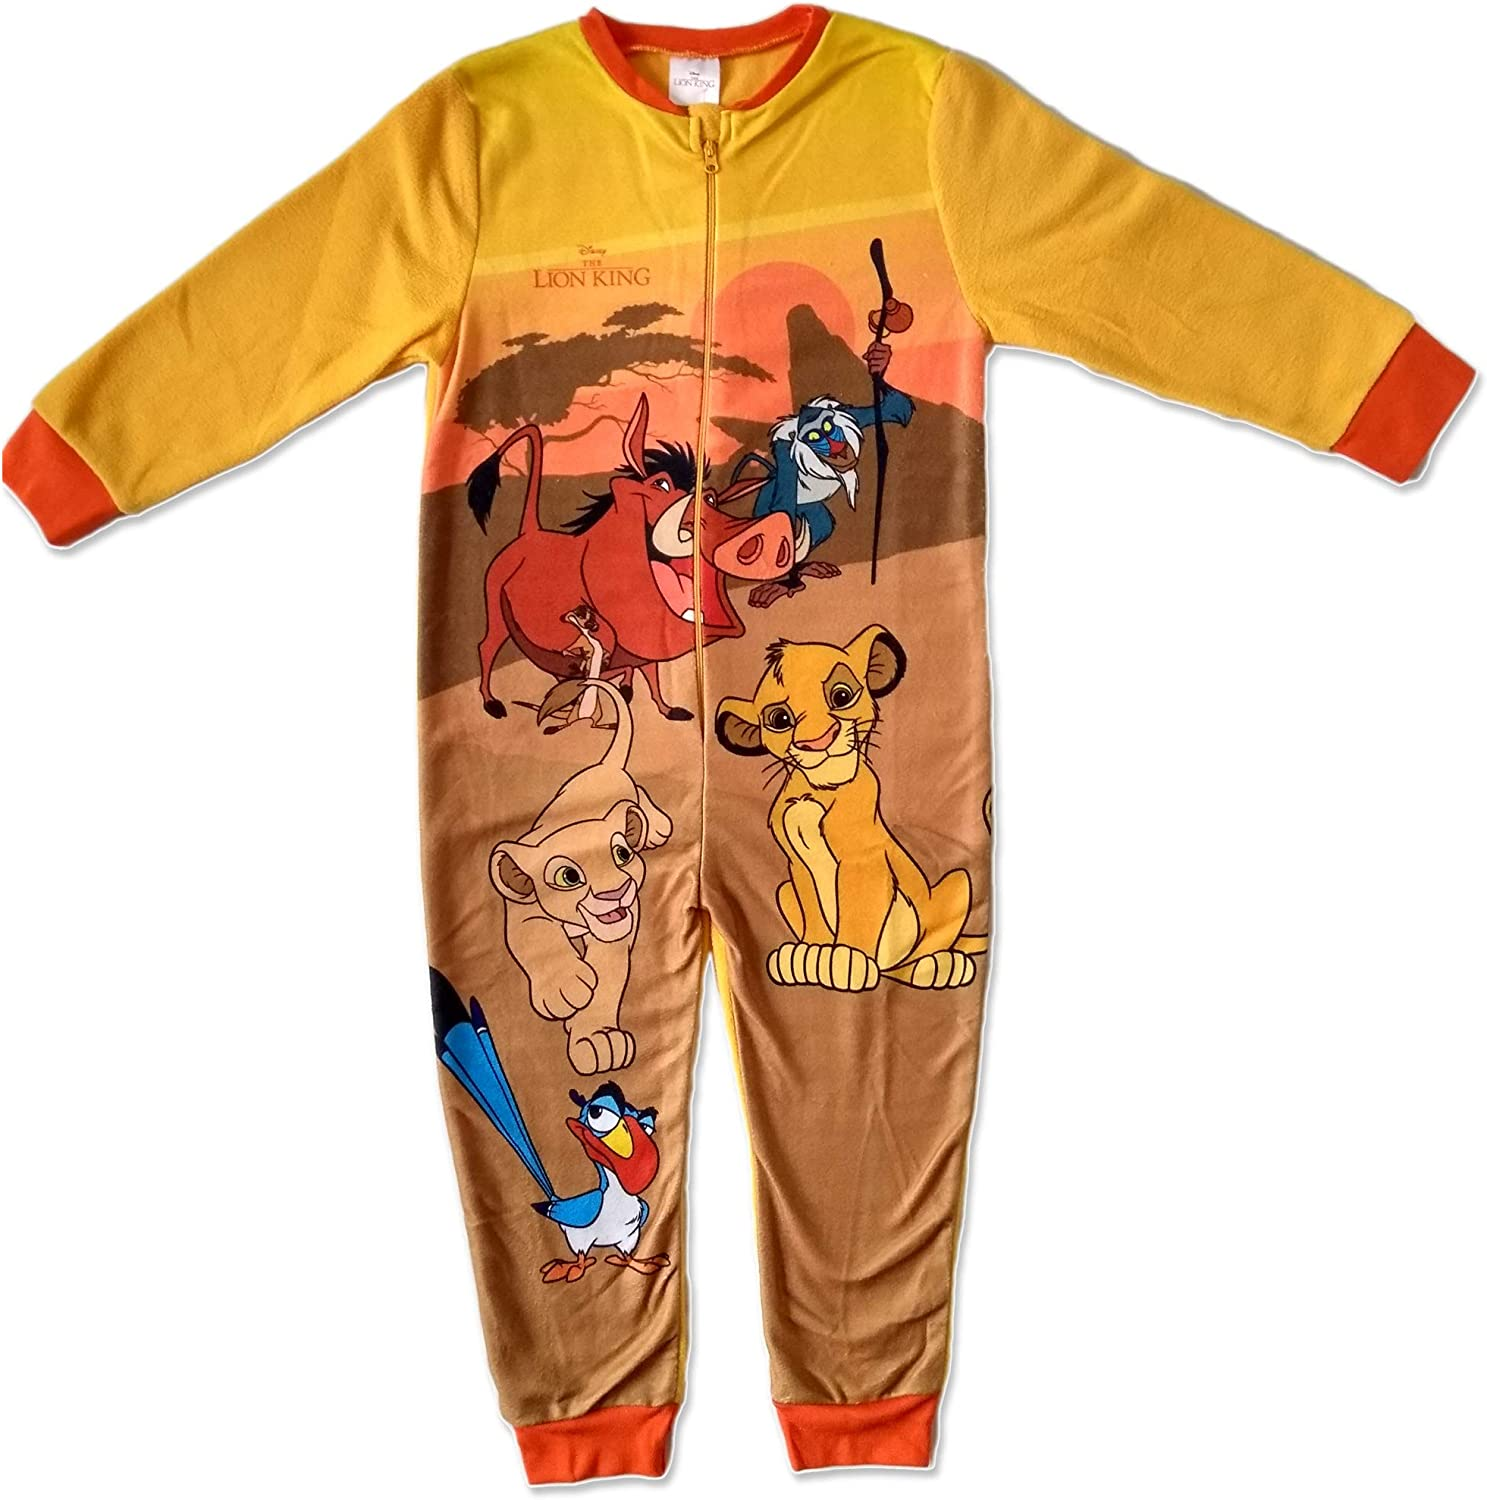 Boys Lion King Fleece Onesie Sleepsuit